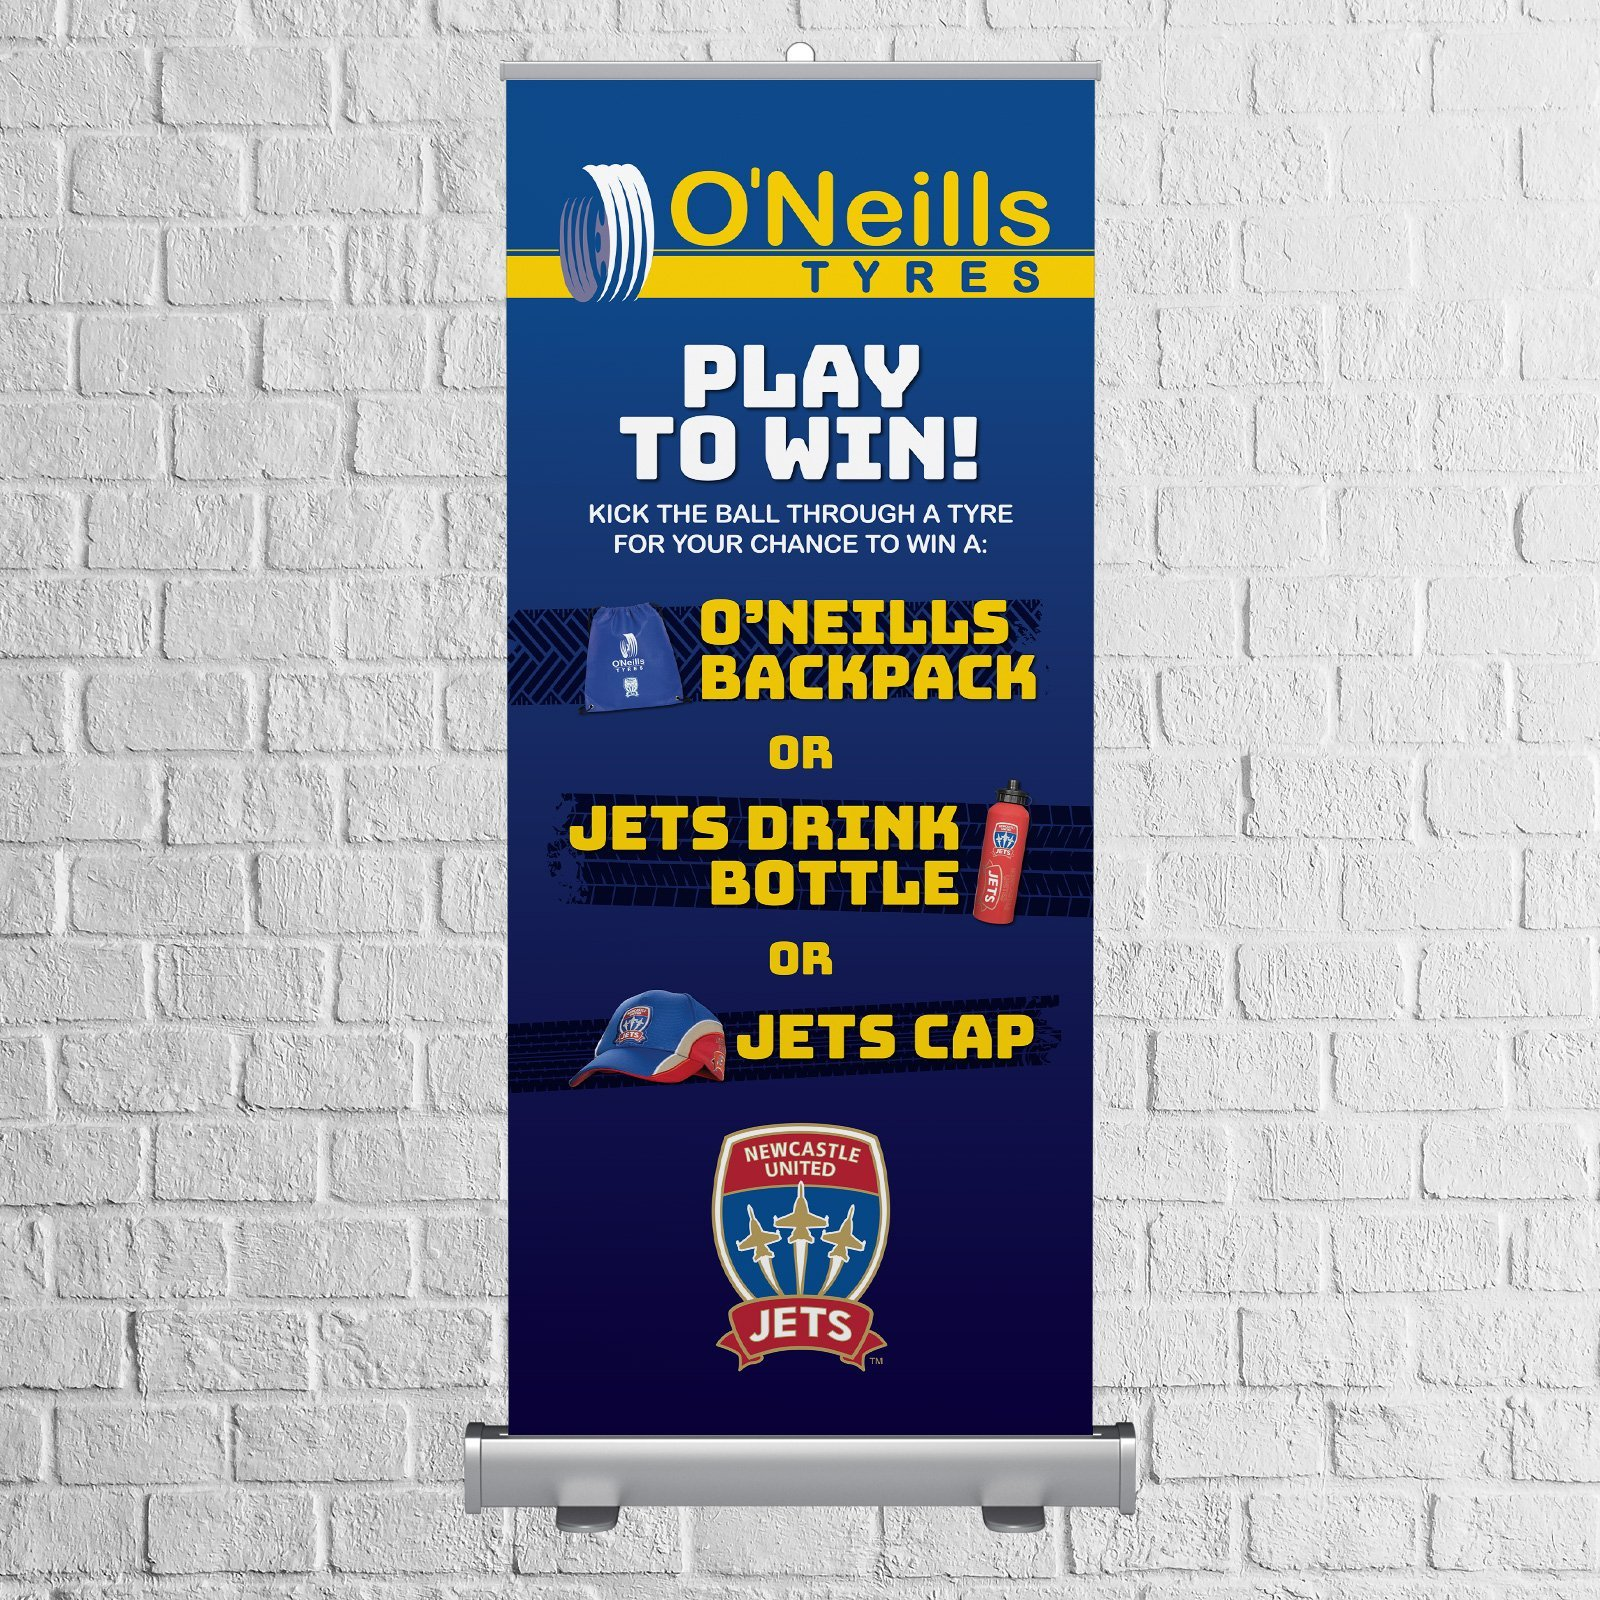 O'Neill's Tyres Event Pull Up Banner